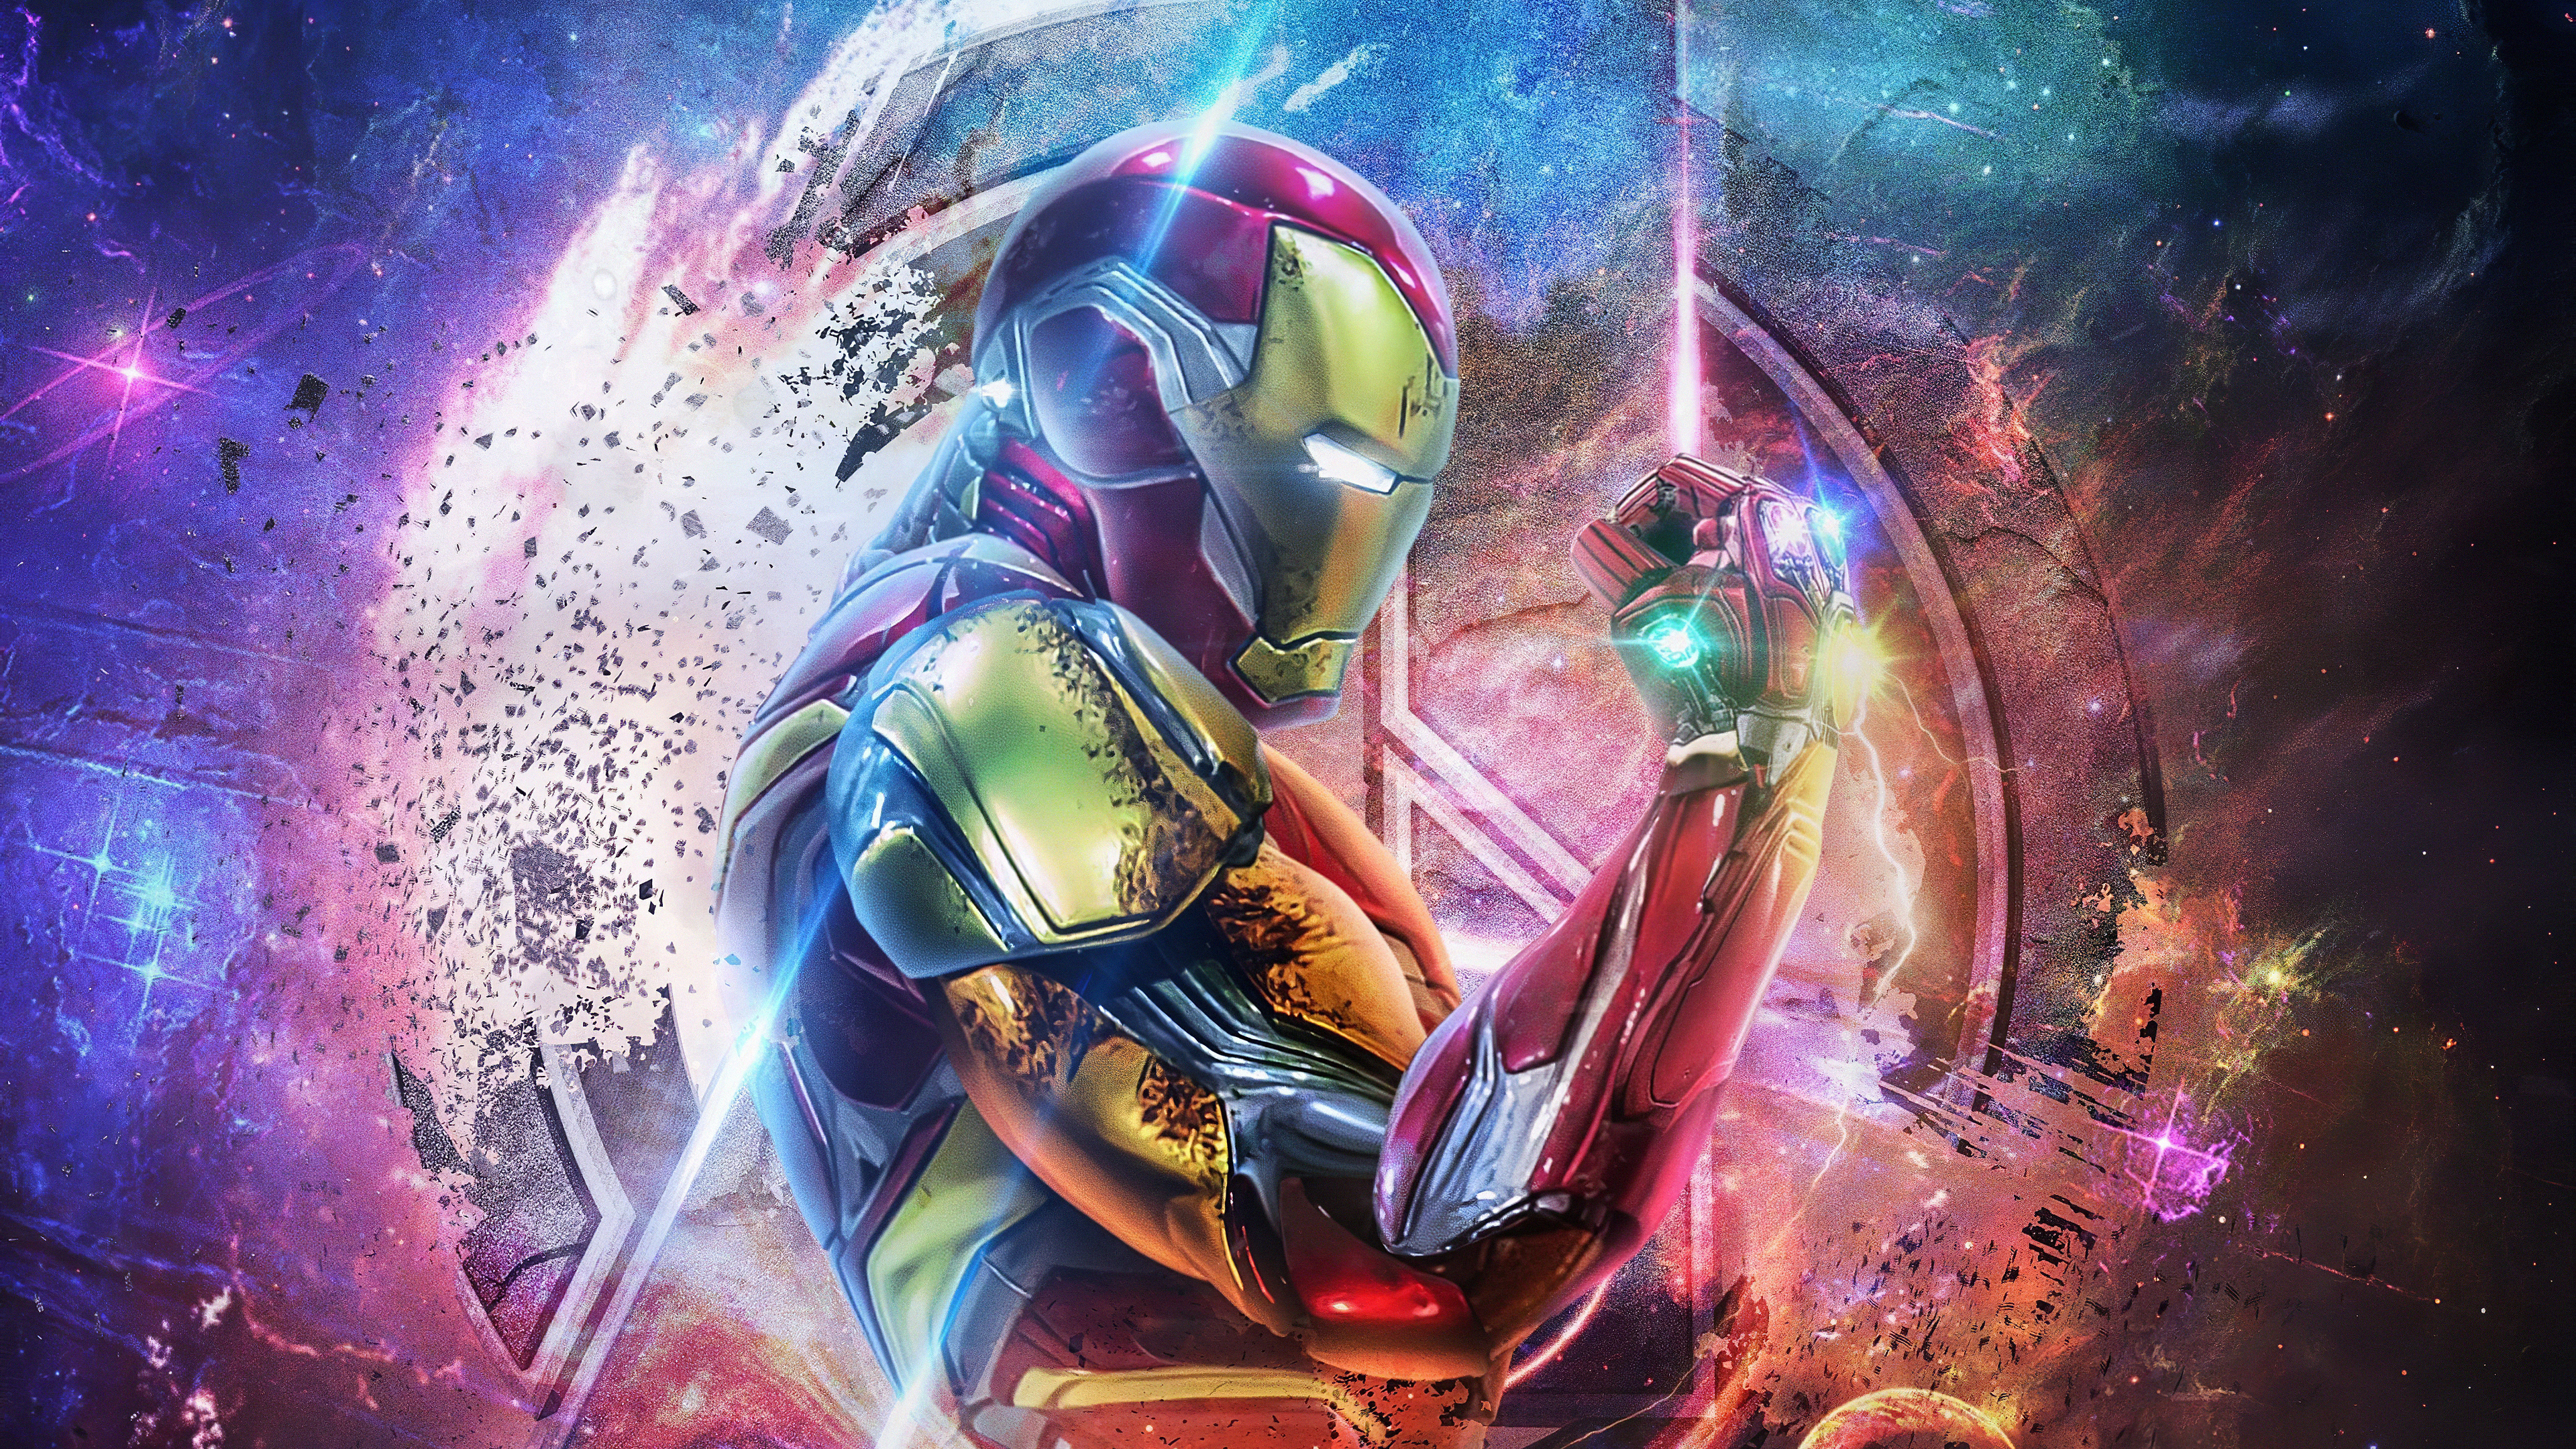 iron man avengers endgame 1572368981 - Iron Man Avengers Endgame - superheroes wallpapers, iron man wallpapers, hd-wallpapers, digital art wallpapers, avengers endgame wallpapers, artwork wallpapers, 4k-wallpapers